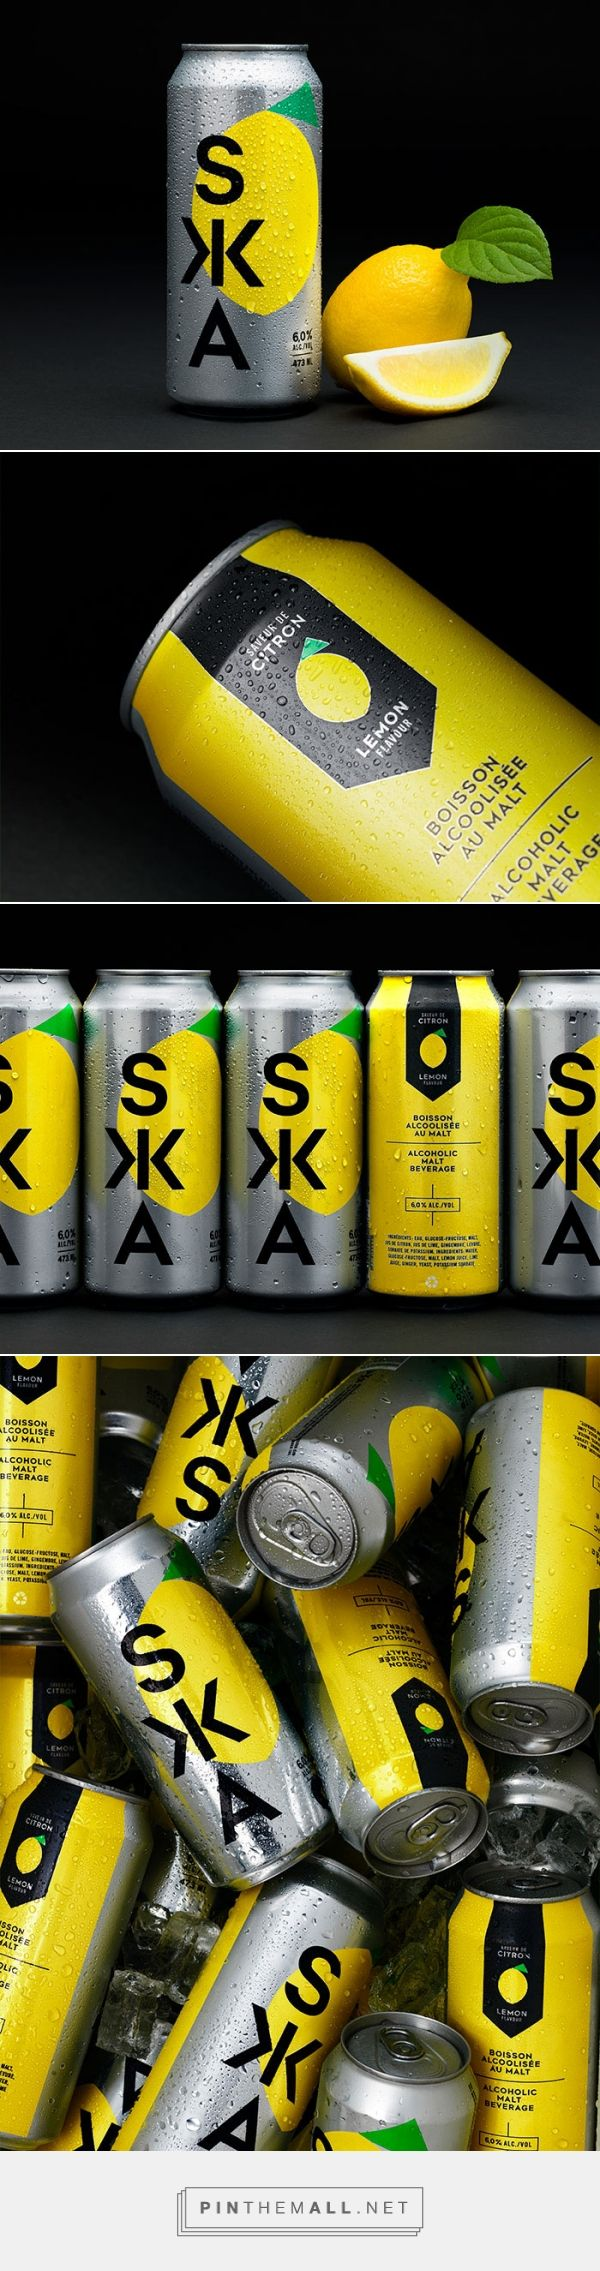 SKA - Farnham Ale & Lager packaging design by lg2boutique - http://www.packagingoftheworld.com/2016/11/ska-farnham-ale-lager.html